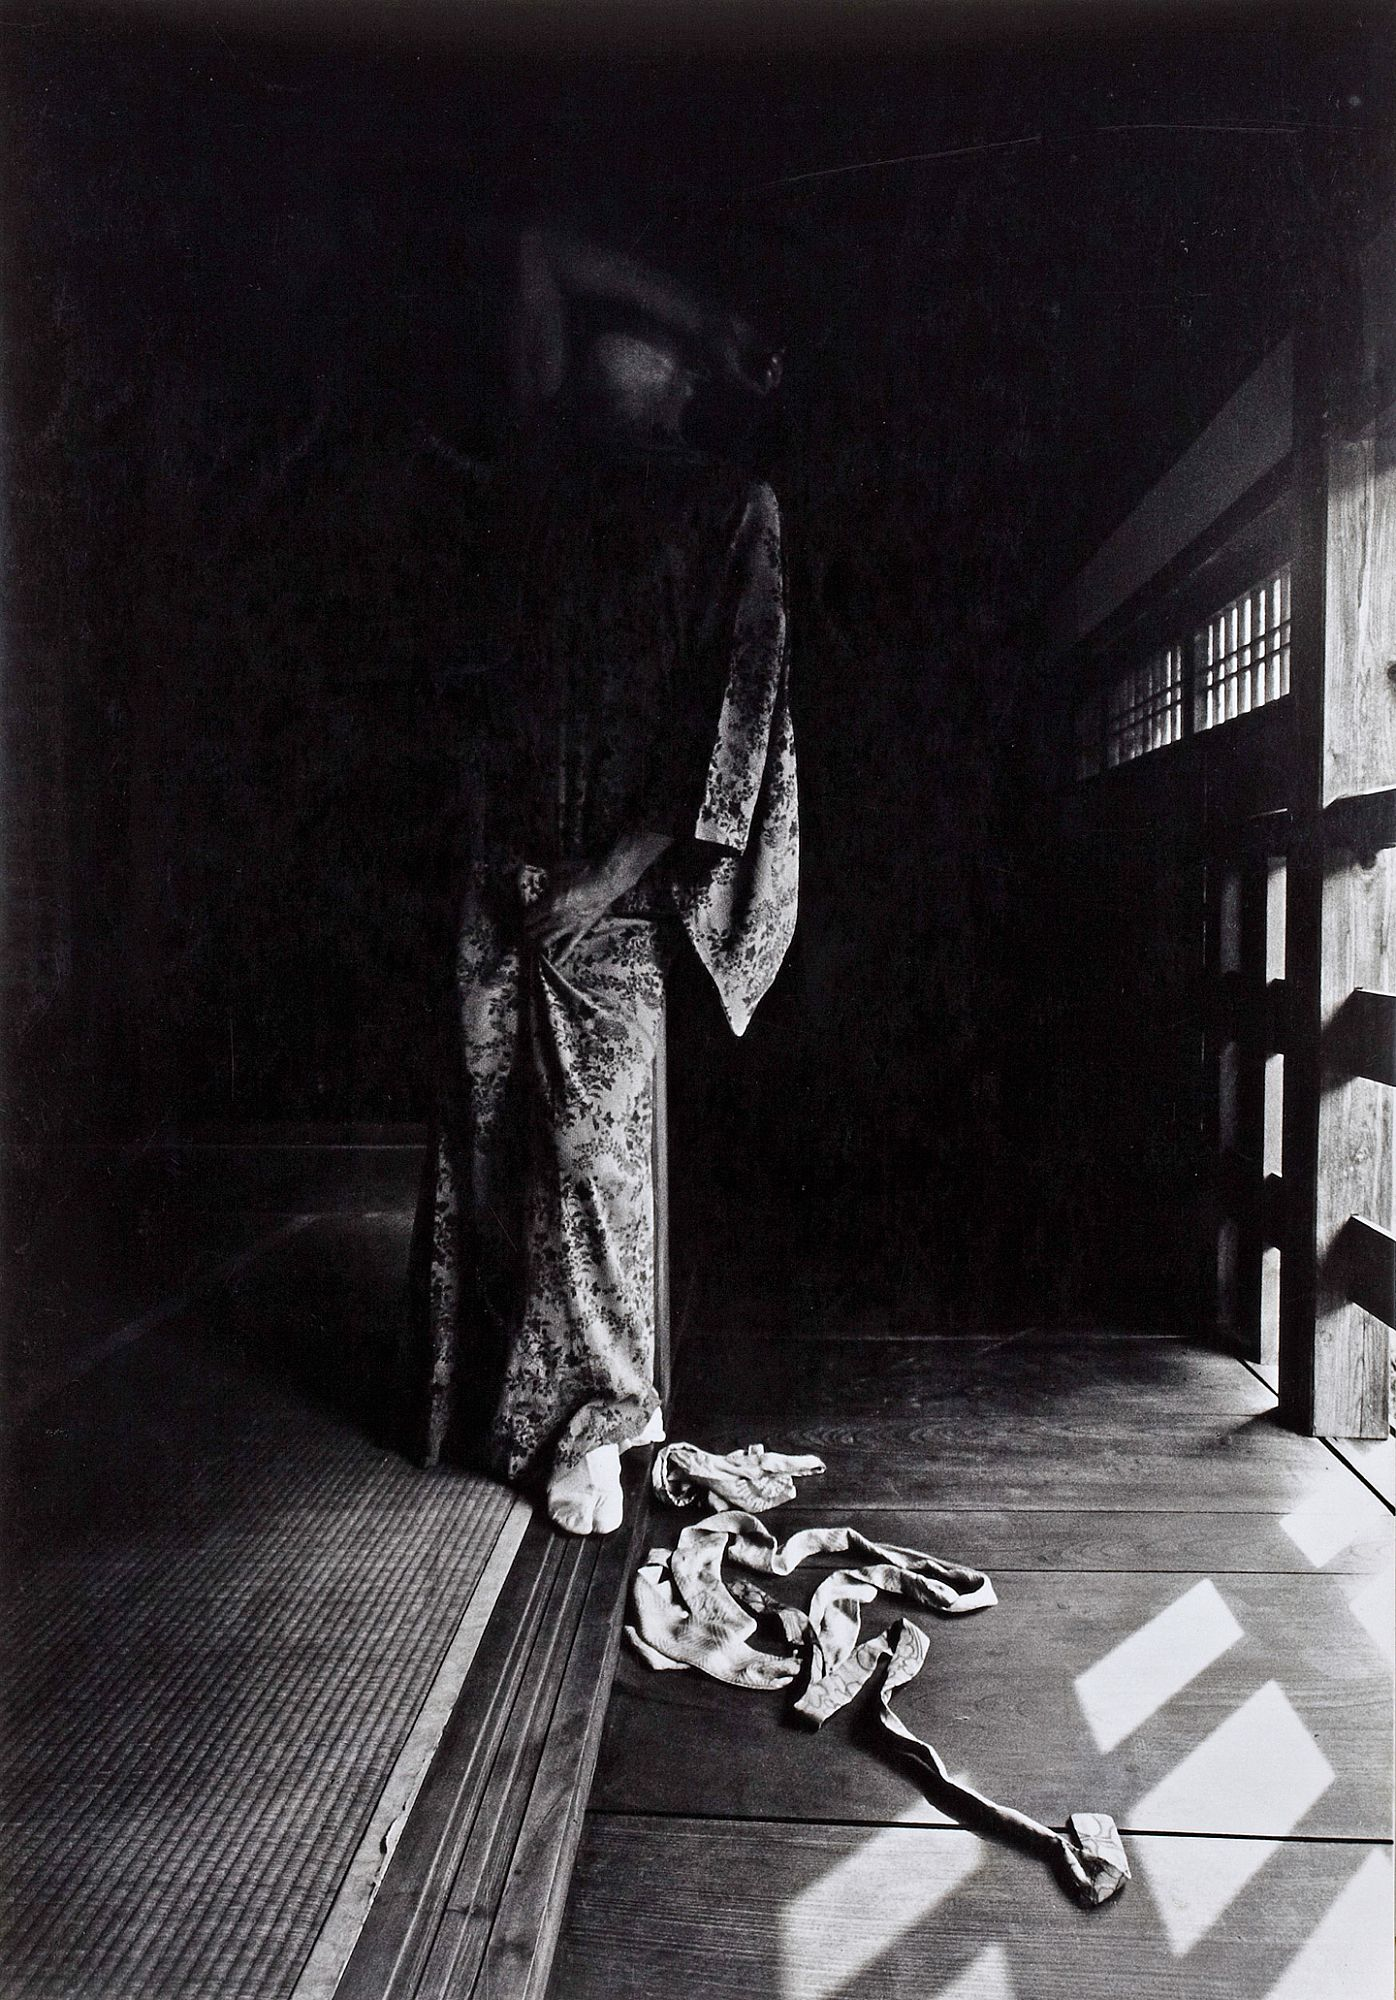 Kamaitachi: Photographs by Eikoh Hosoe, Limited Edition